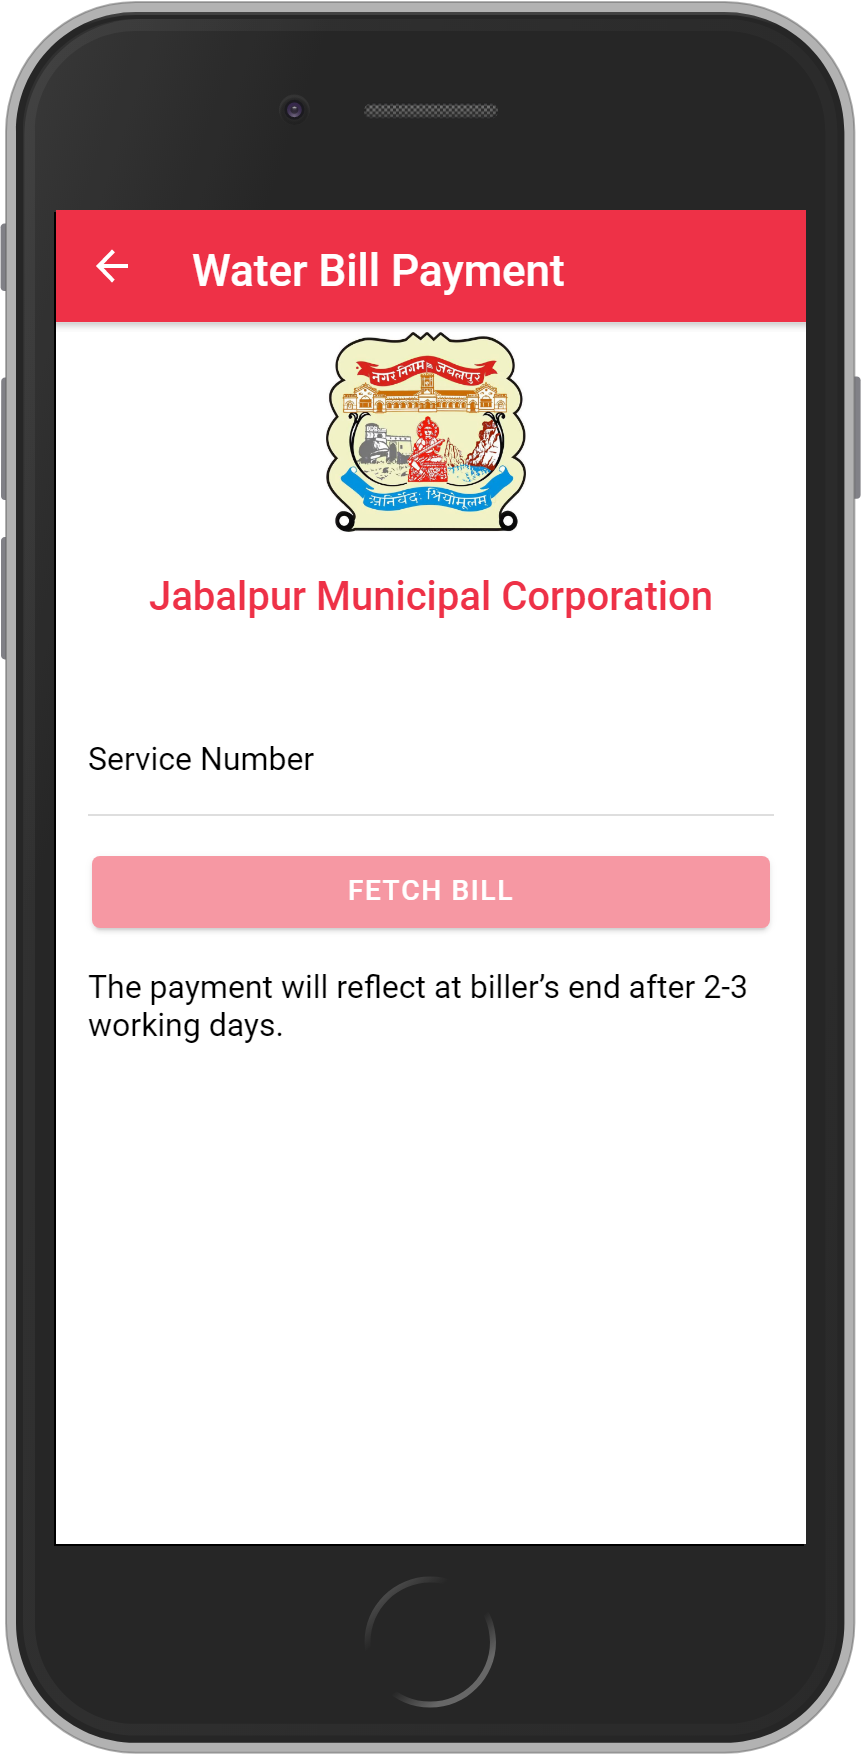 Get UNLIMITED <b>0.1%</b> CASHBACK on Indore Municipal Corporation Bill Payment.